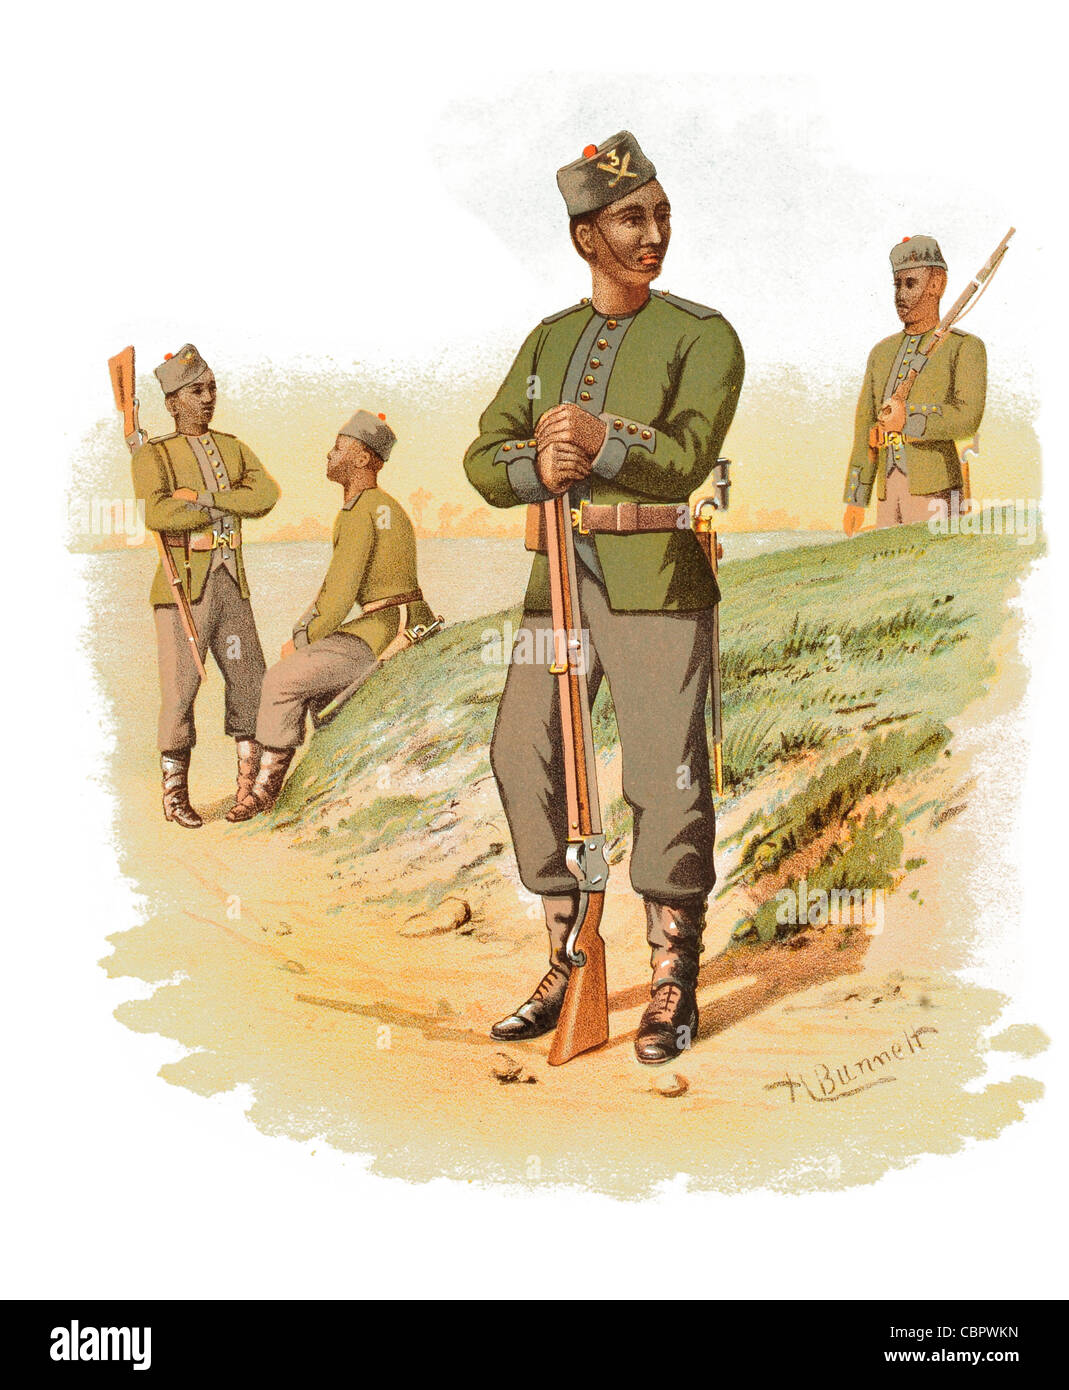 3rd Gorkha Rifles Indian Army infantry regiment Gurkha Queen Alexandra's Own Gurkha Rifles - Stock Image